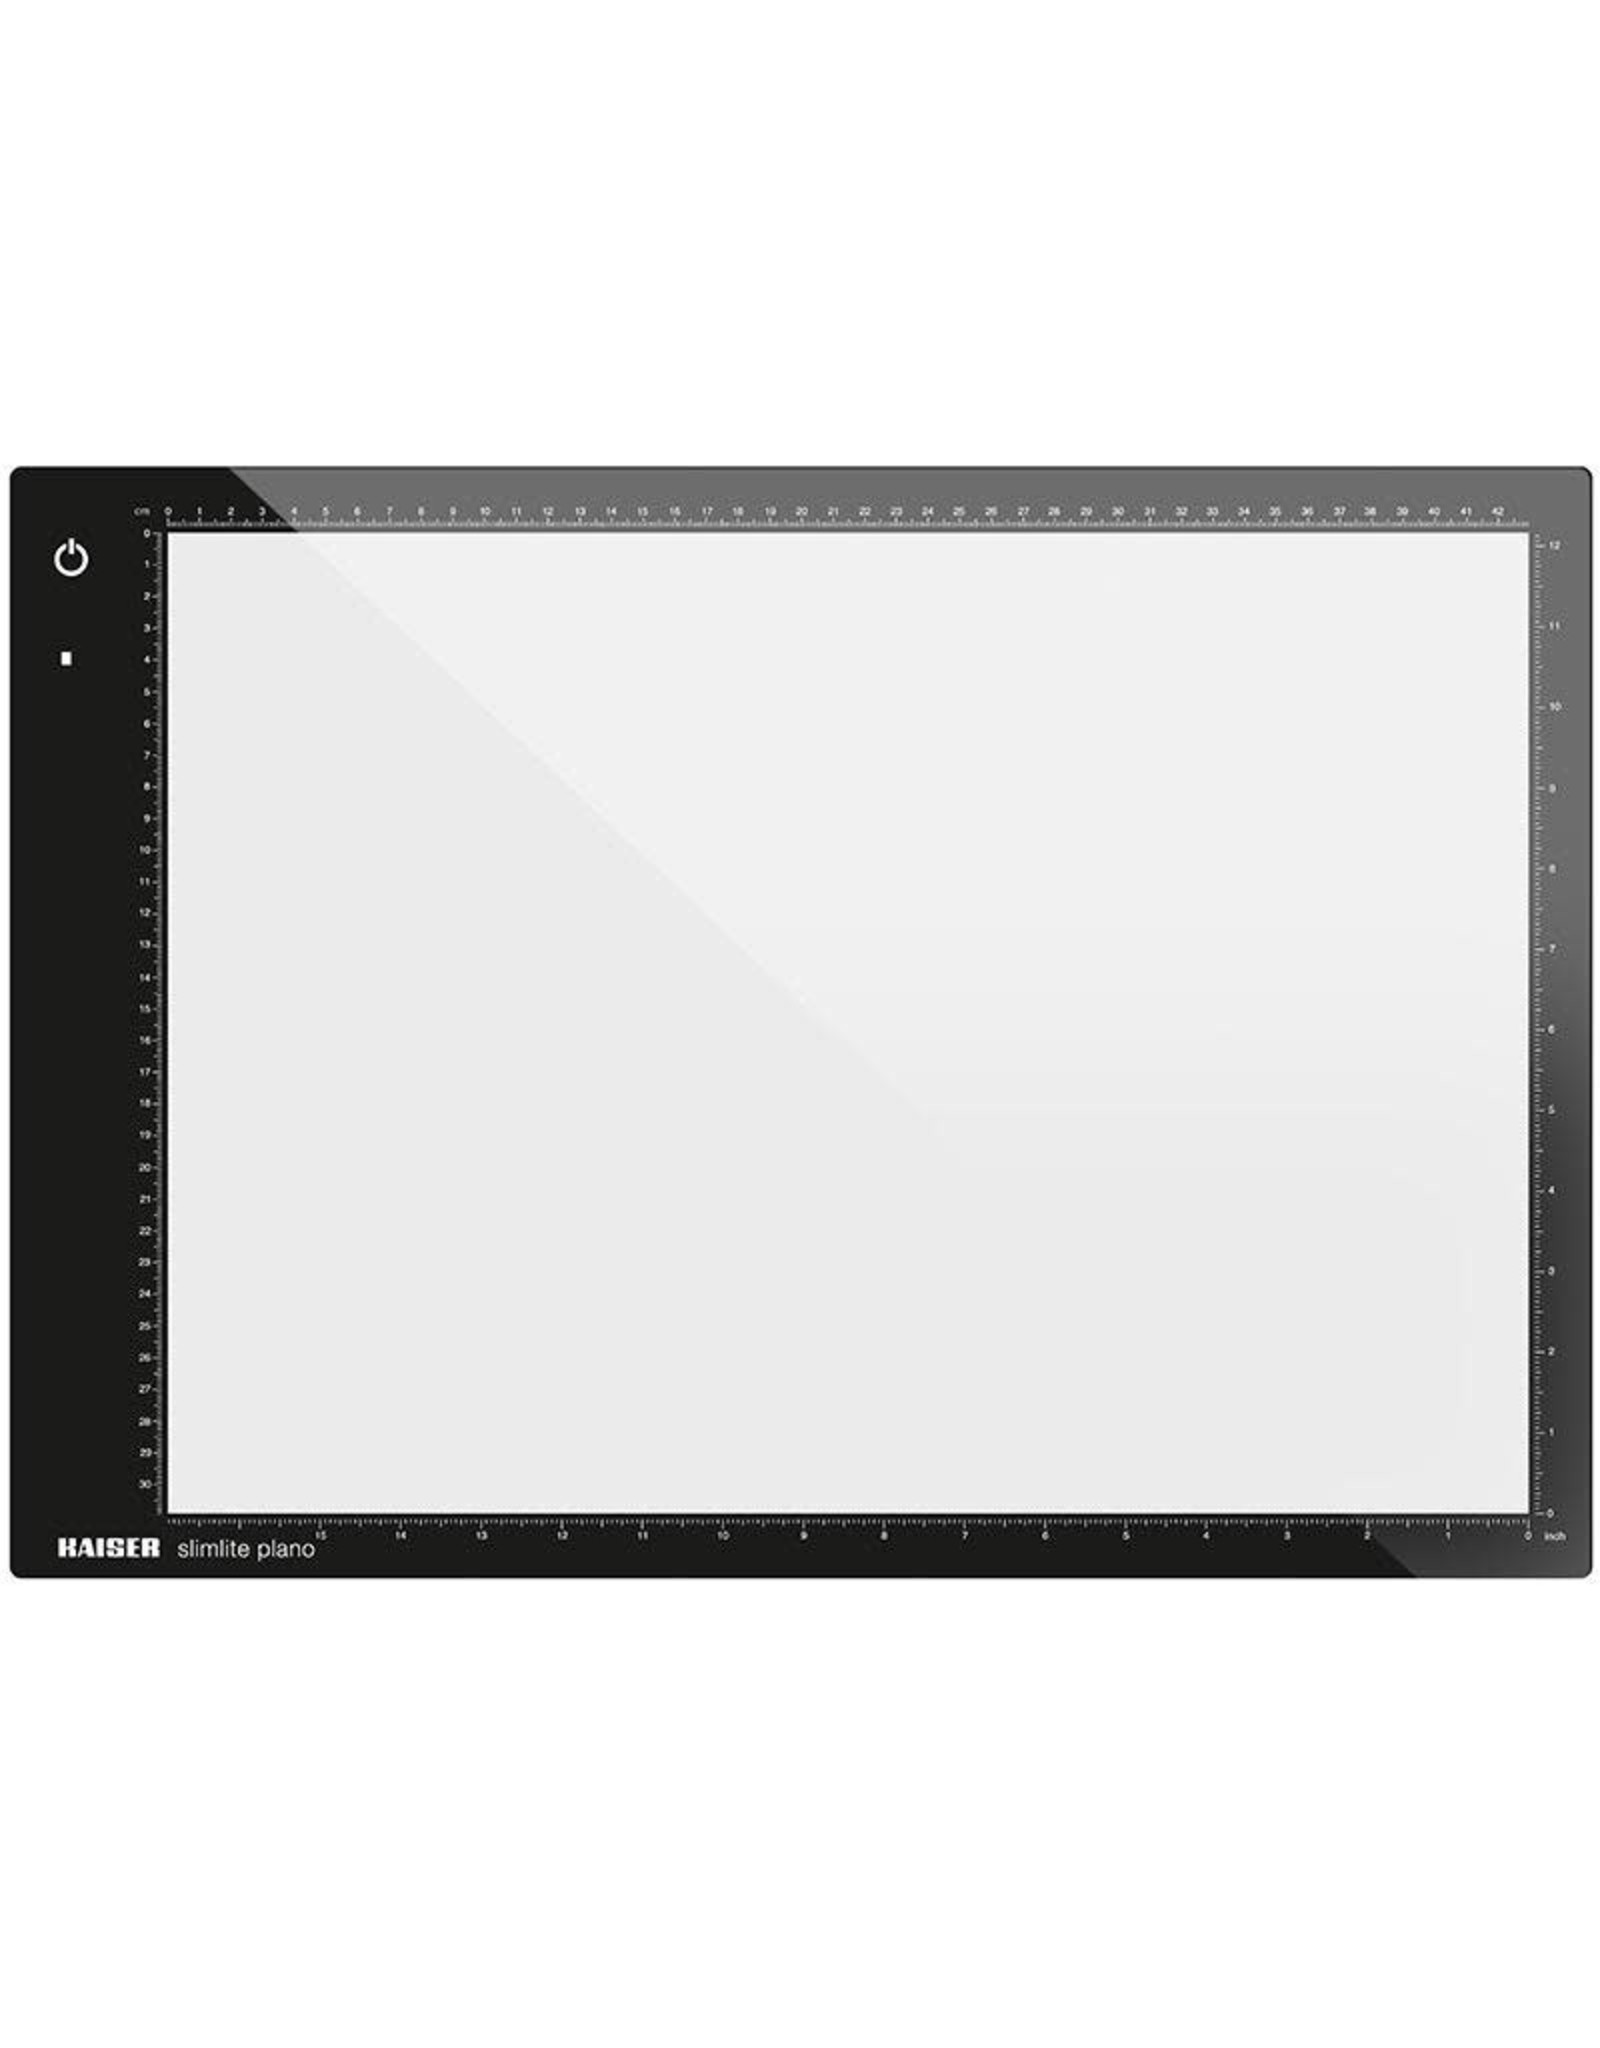 "Kaiser Kaiser ""slimlite plano"" LED Light Box (Large), 5000 K, dimmable, mains or battery operation, incl. mains adapter / charger, illuminated area 31 x 42.8 (12.2 x 16.9 in.) 100 - 120 V / 60 Hz, US-Plug"